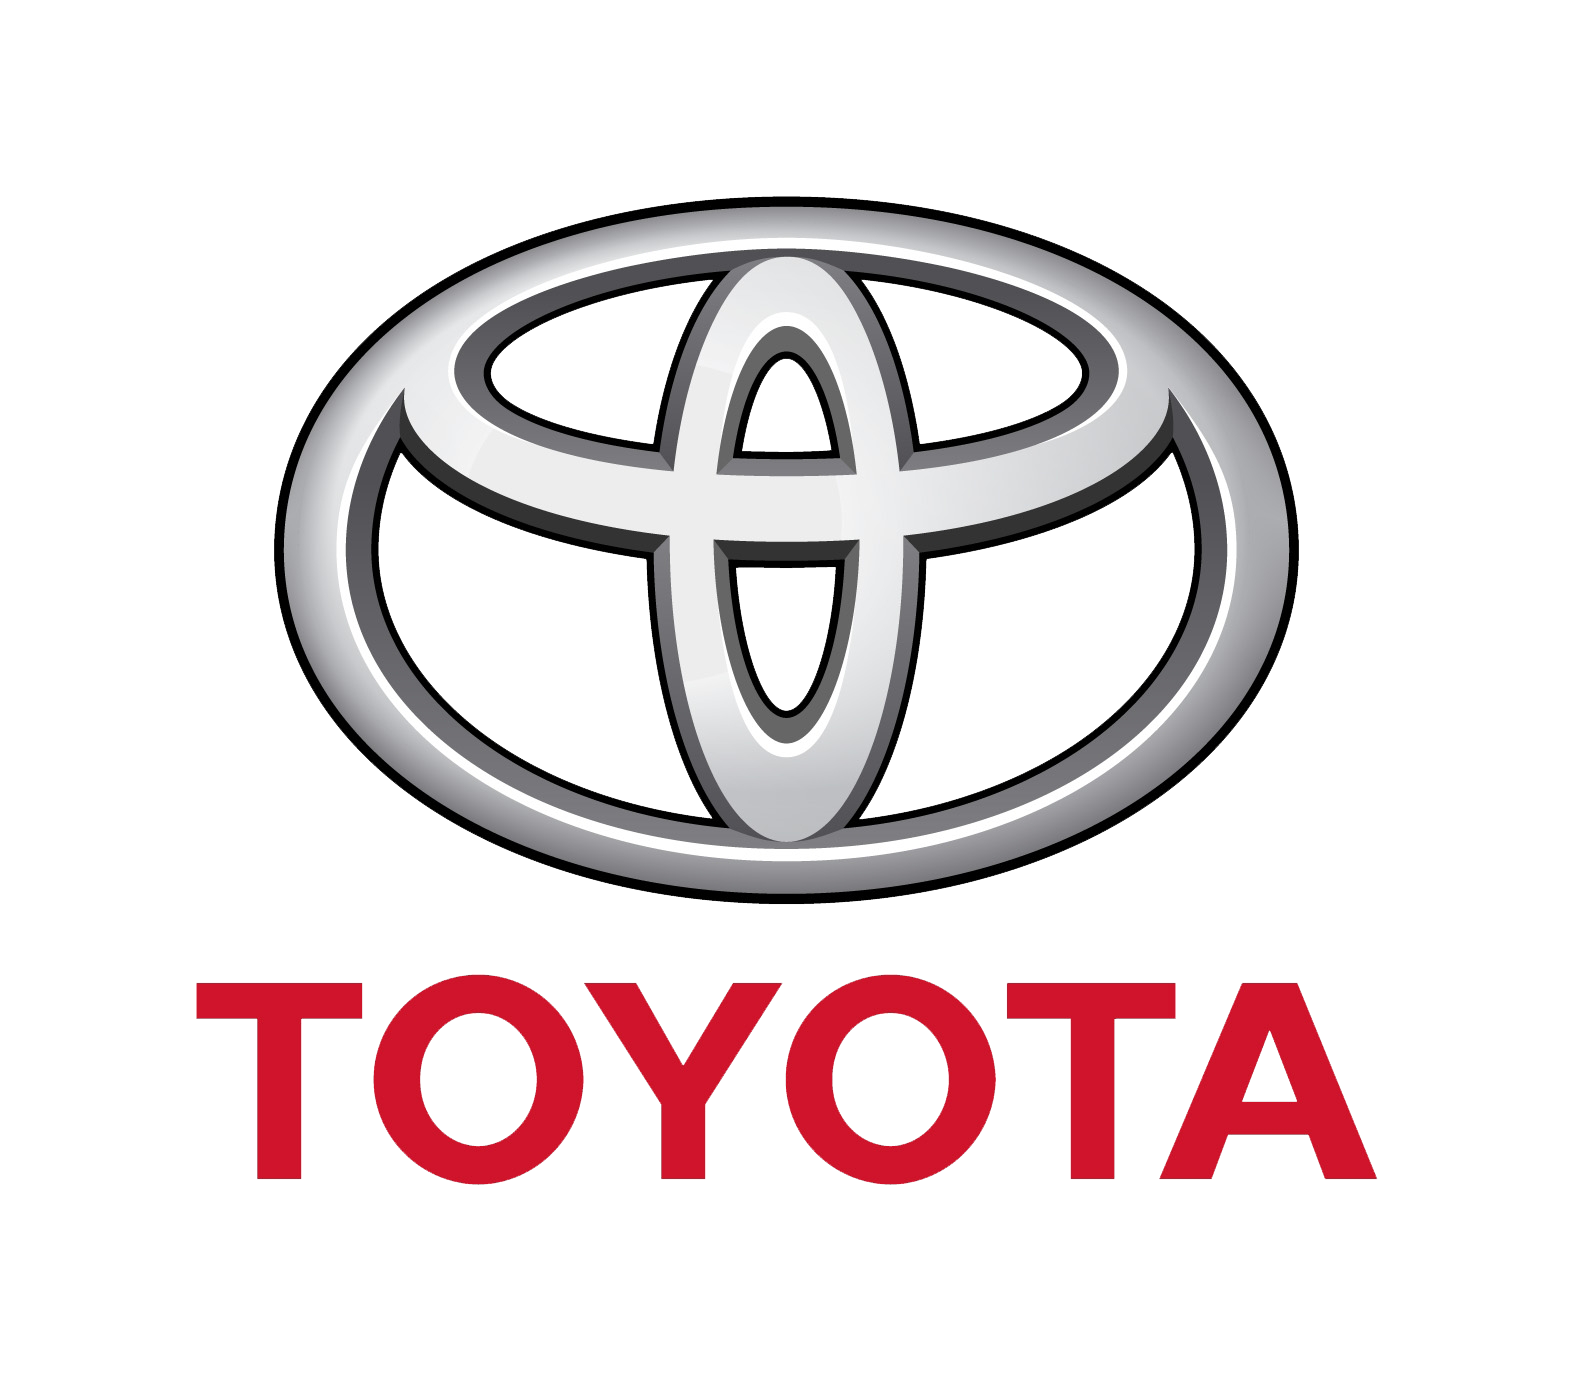 Logo Toyota Flat Png - Top Toyota Logo Png Images, Transparent background PNG HD thumbnail